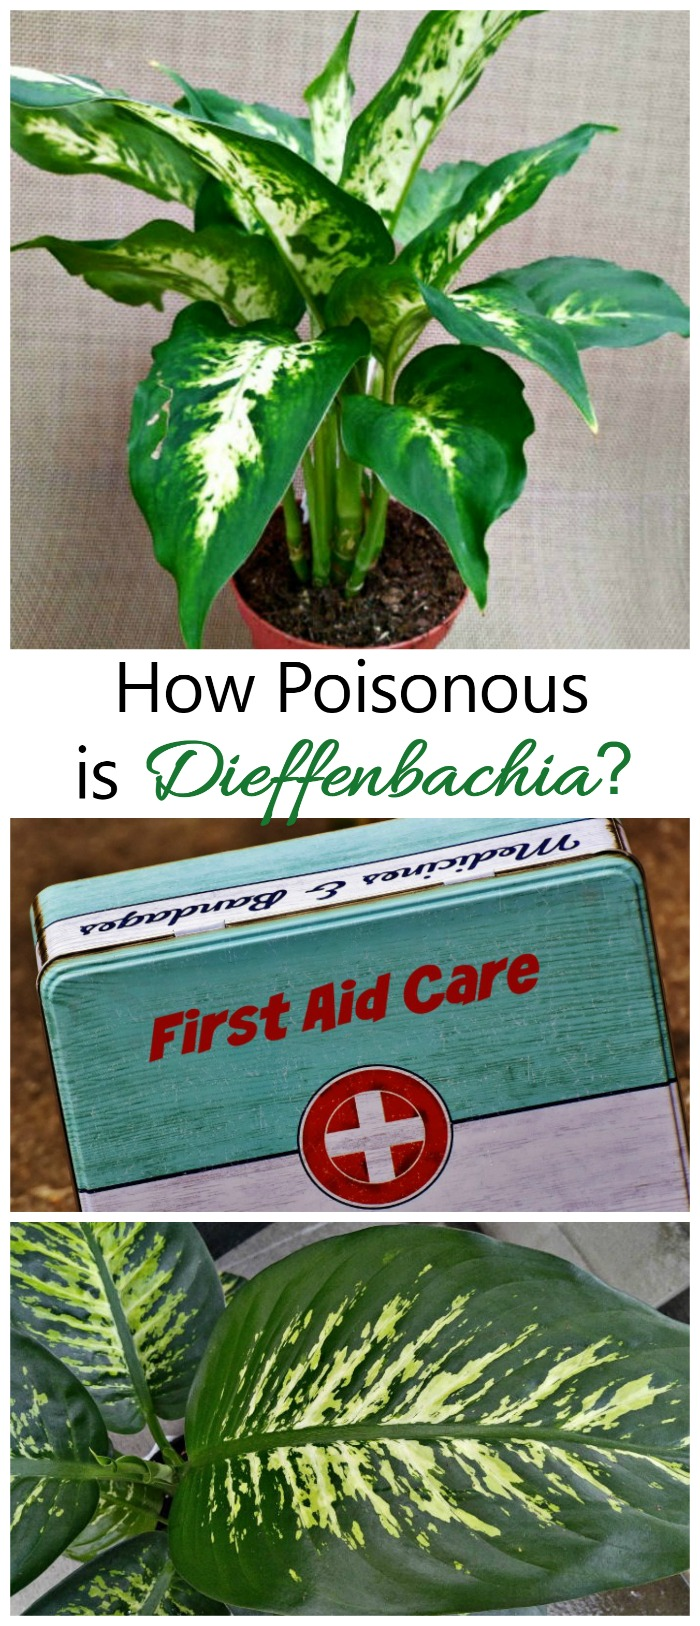 Dieffenbachia is a very popular houseplant. It is also poisonous to children and pets. See how toxic the plant , symptoms and remedies.